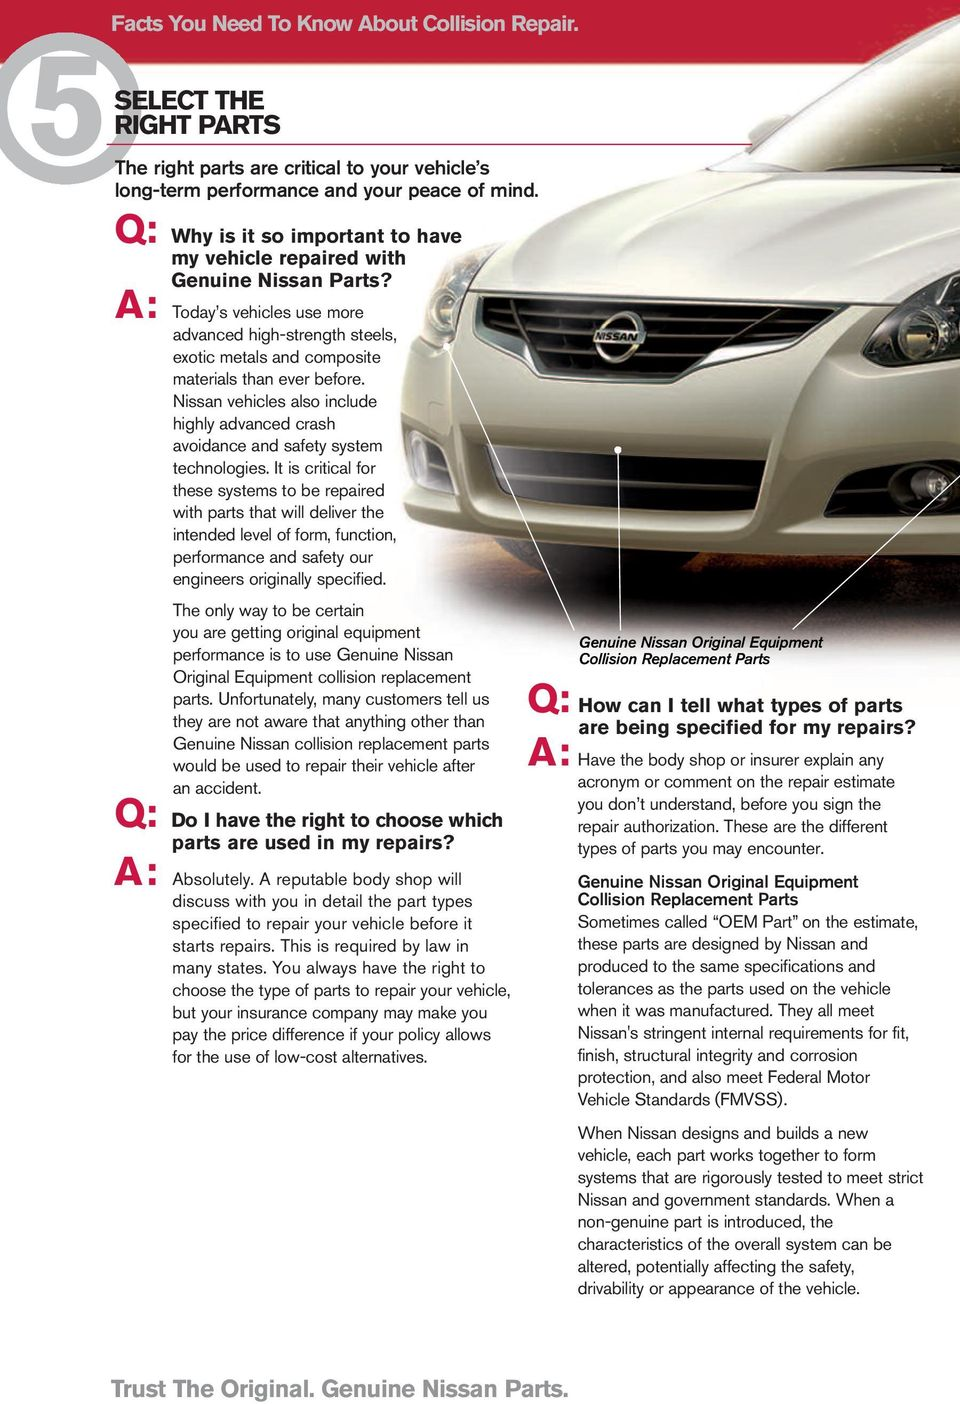 Nissan vehicles also include highly advanced crash avoidance and safety system technologies.